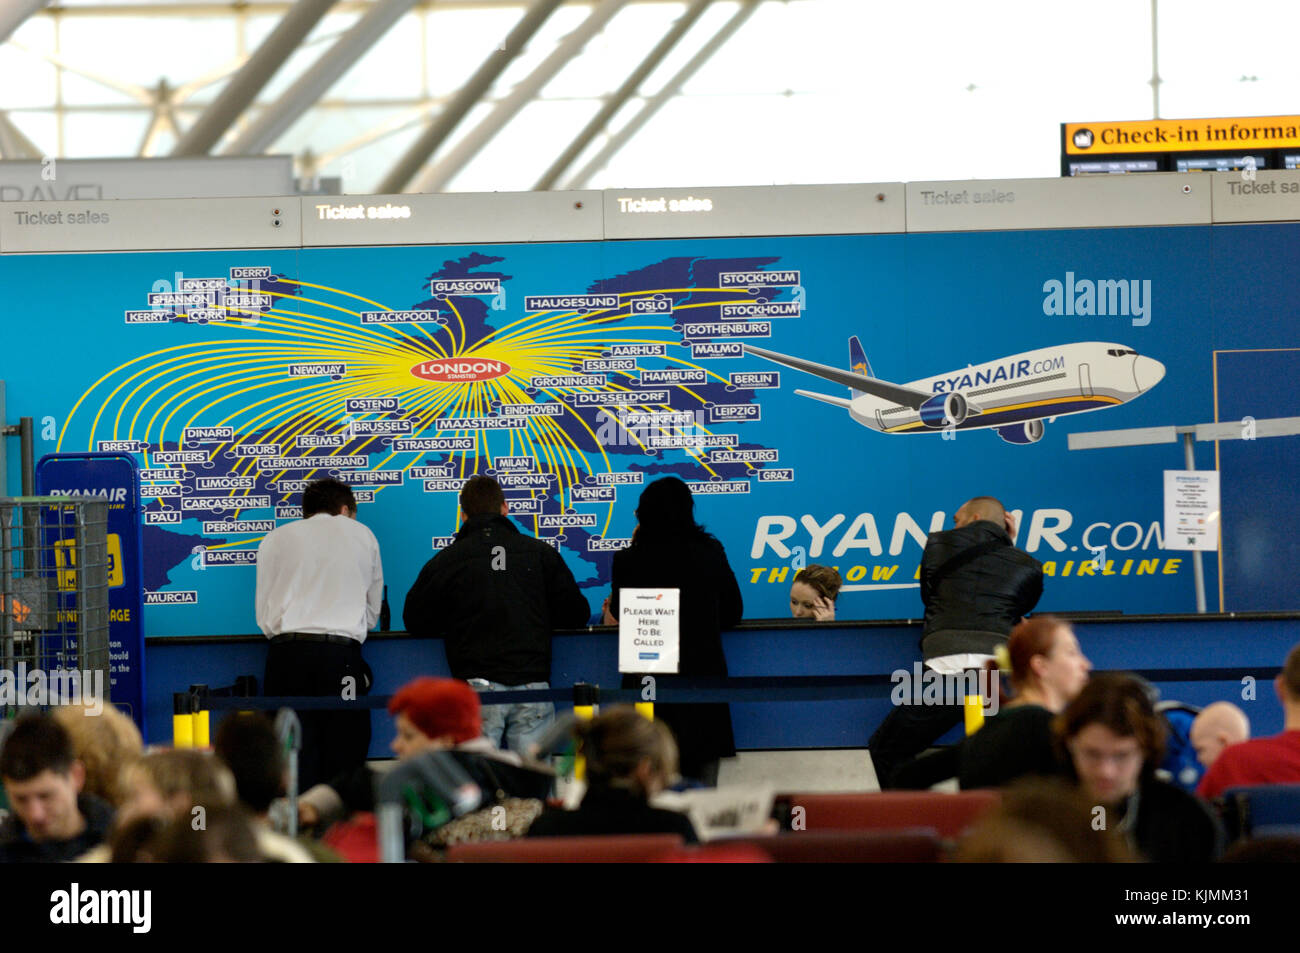 passengers at the ticket sales & excess baggage payments desk with a route map on the wall behind, others sitting - Stock Image